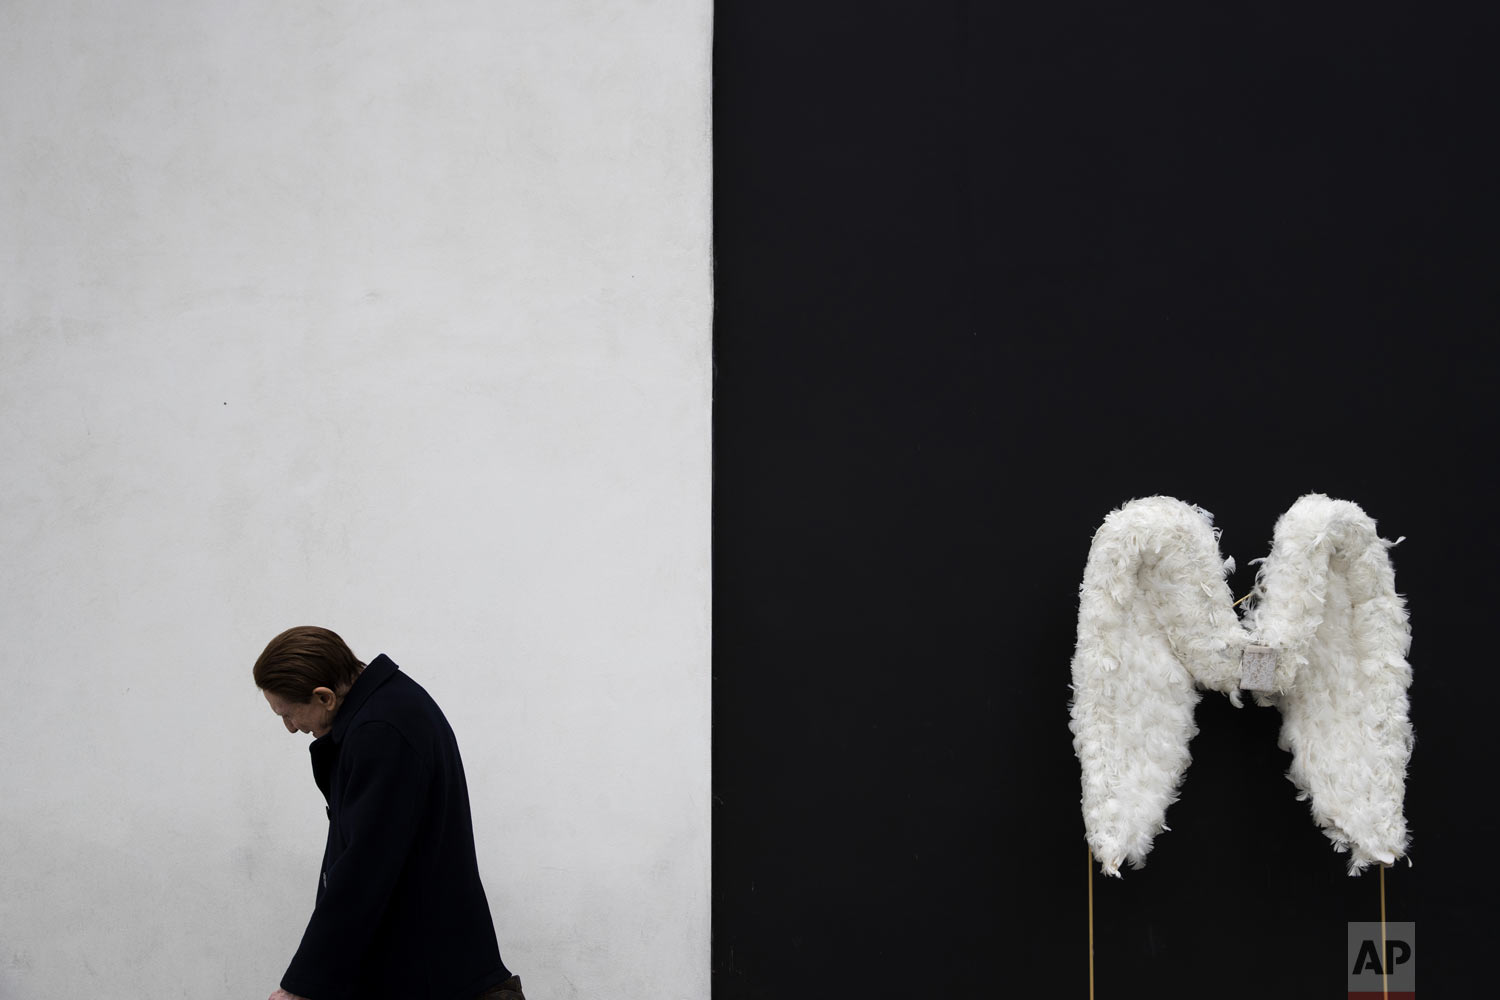 A man walks by a pair of angel wings as part of a store display in Beverly Hills, Calif., on Tuesday, May 7, 2019 (AP Photo/Jae C. Hong)